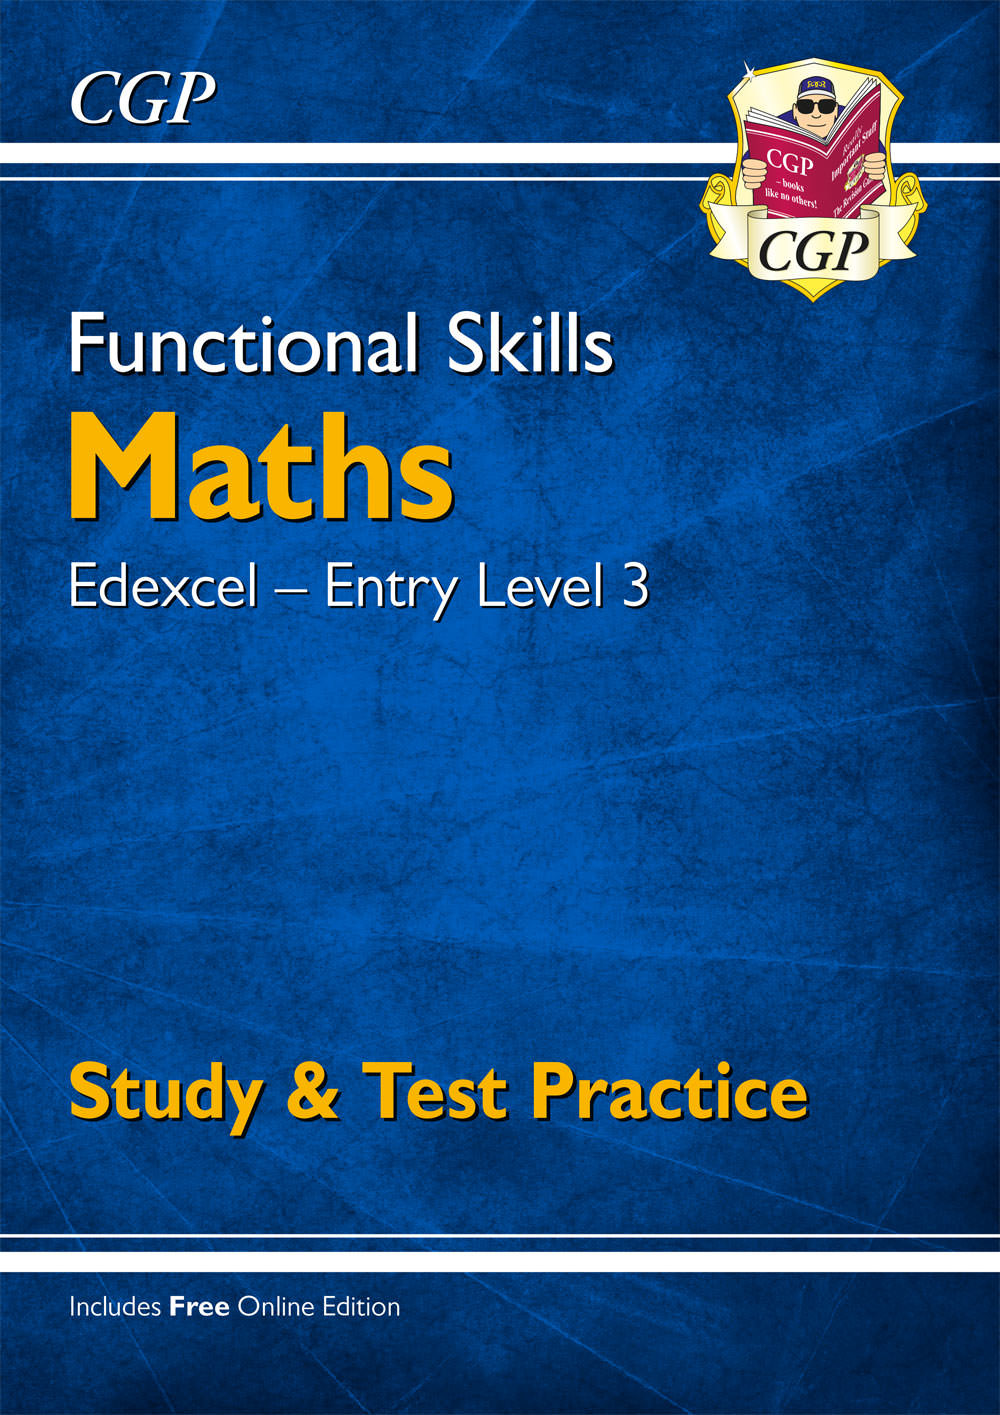 M3ESRA1 - New Functional Skills Maths: Edexcel Entry Level 3 - Study & Test Practice (for 2019 & bey